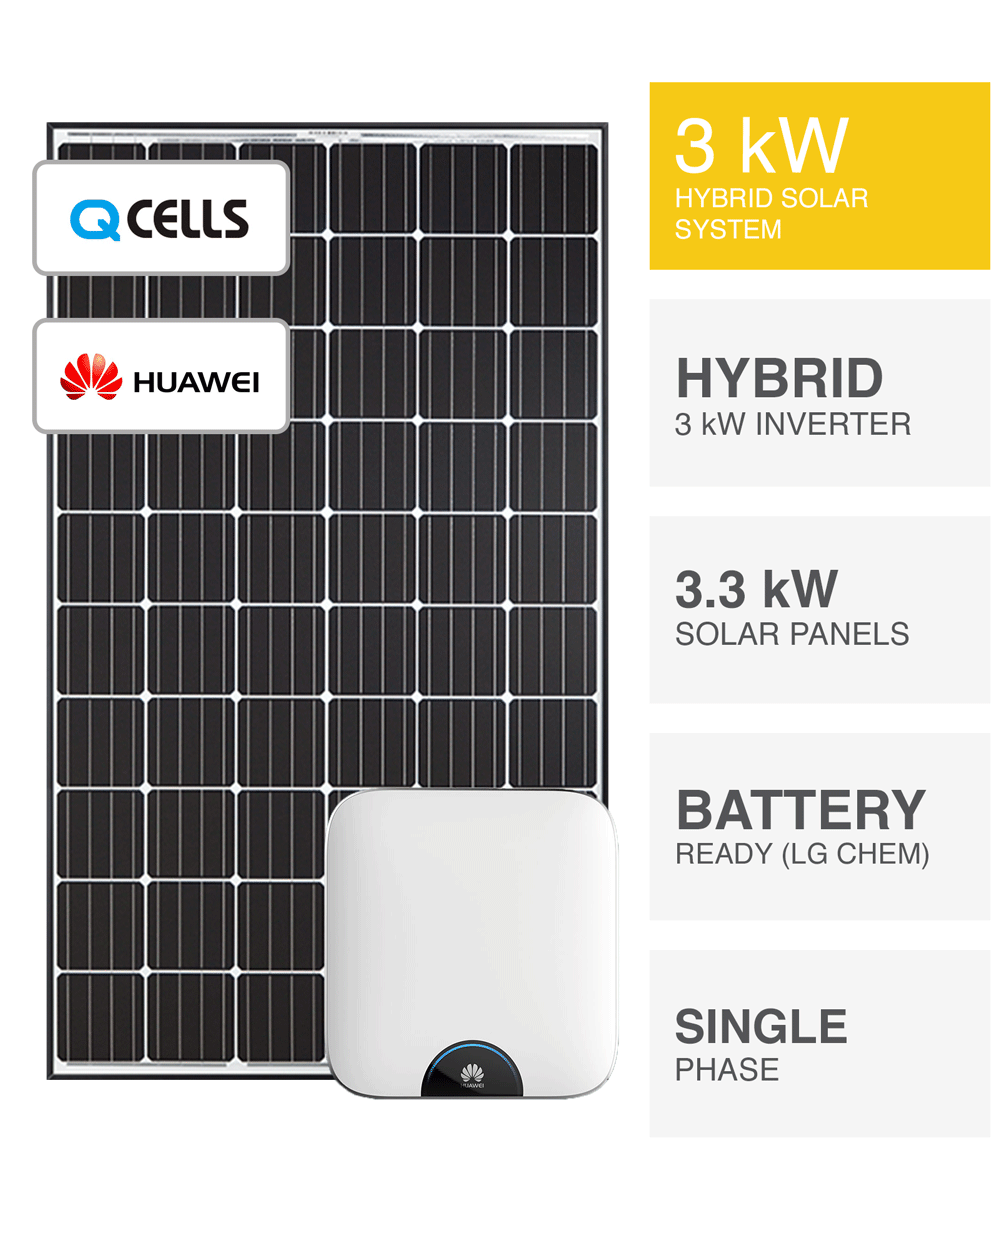 3kw Hybrid Solar System Battery Ready Save More